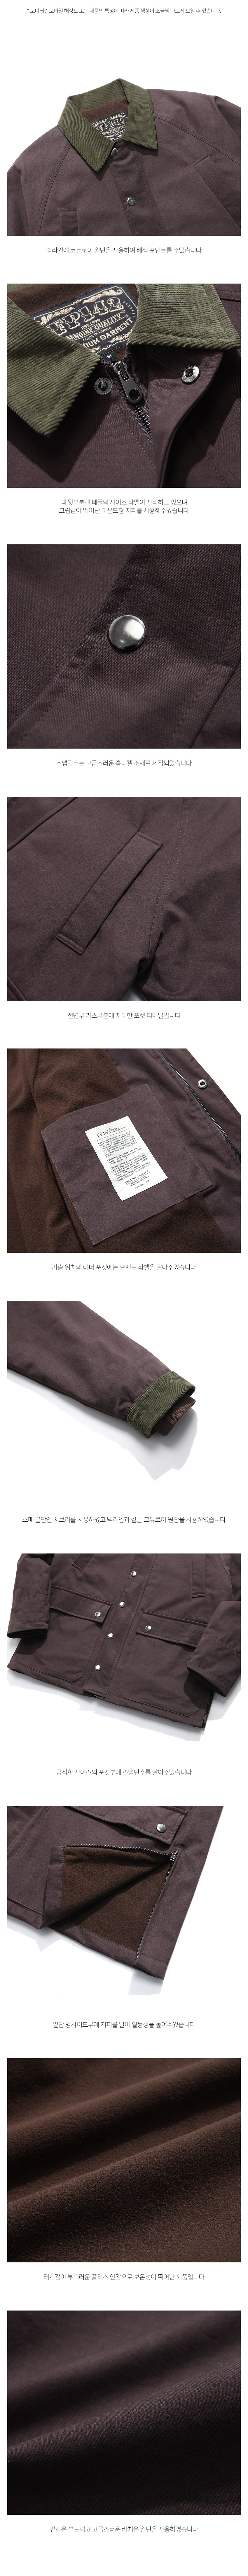 5_SJOT1163_detail_brown2_sr.jpg